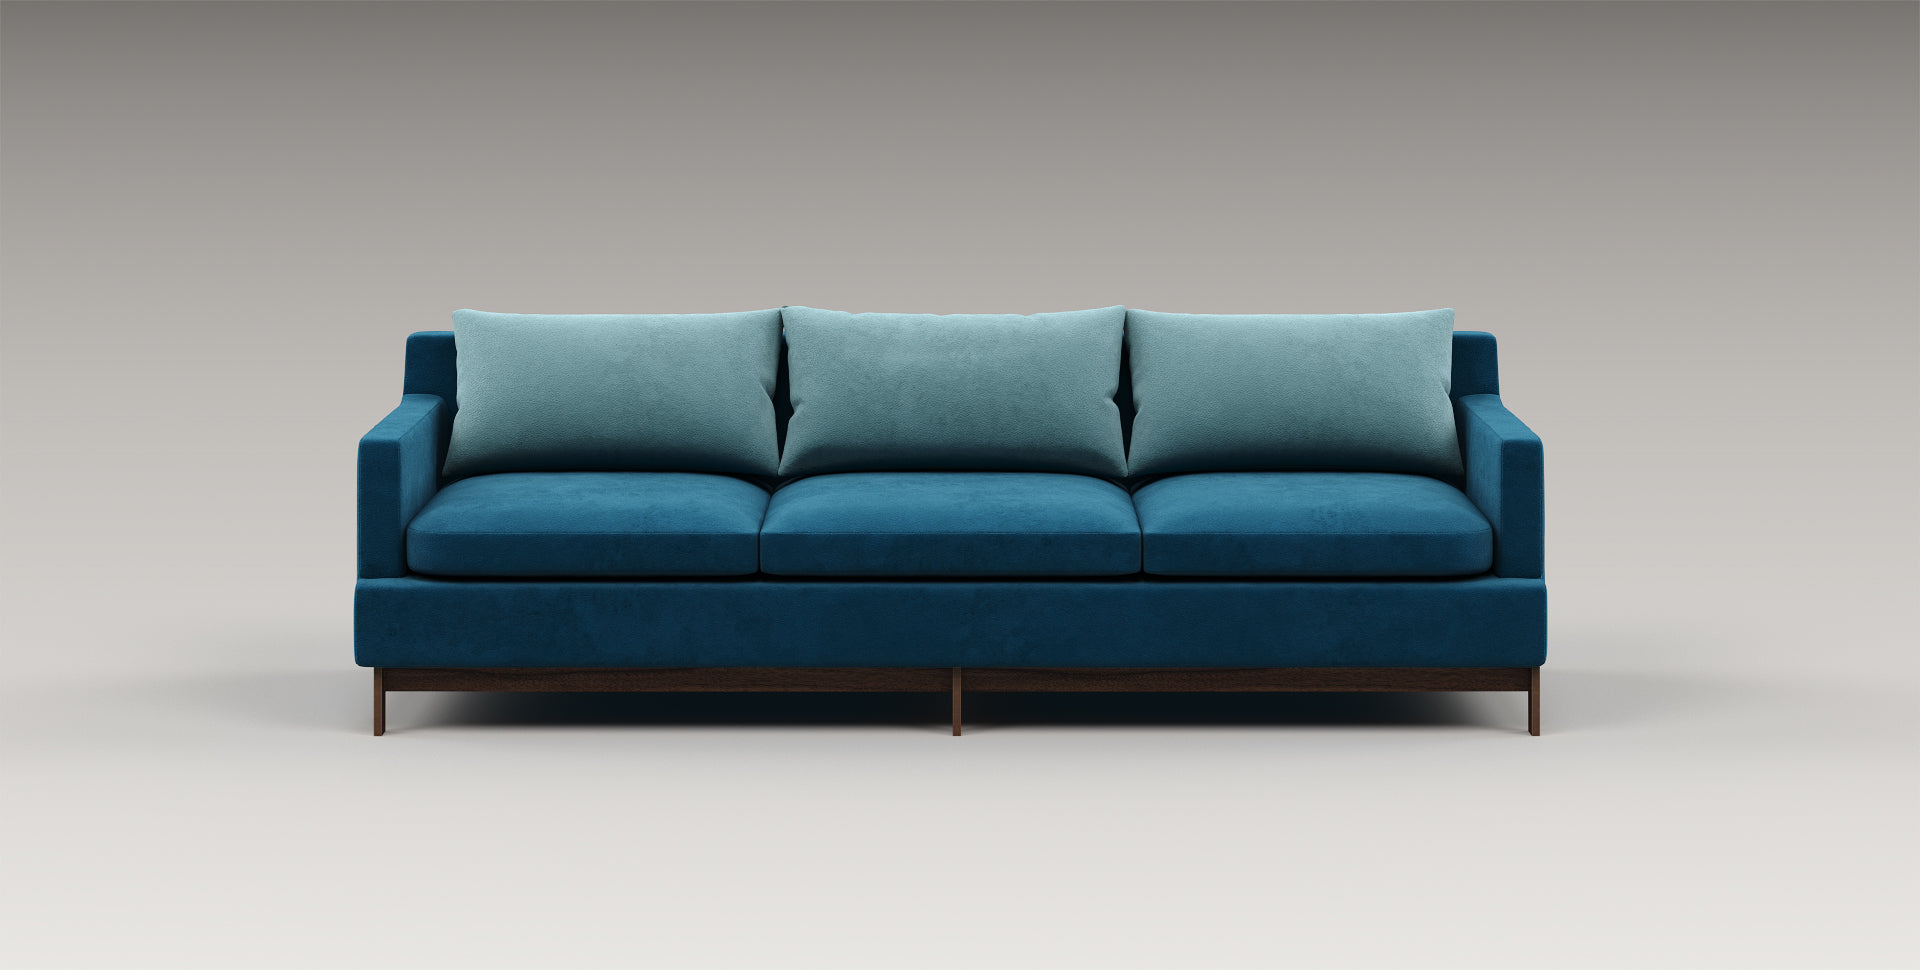 Leonard, comfortable sofa, luxury sofa, suede sofa, leather sofa, luxurious sofa, 2 seater, 3 seater, 4 seater, Pierre Frey, bespoke furniture, bespoke sofa, large sofa,